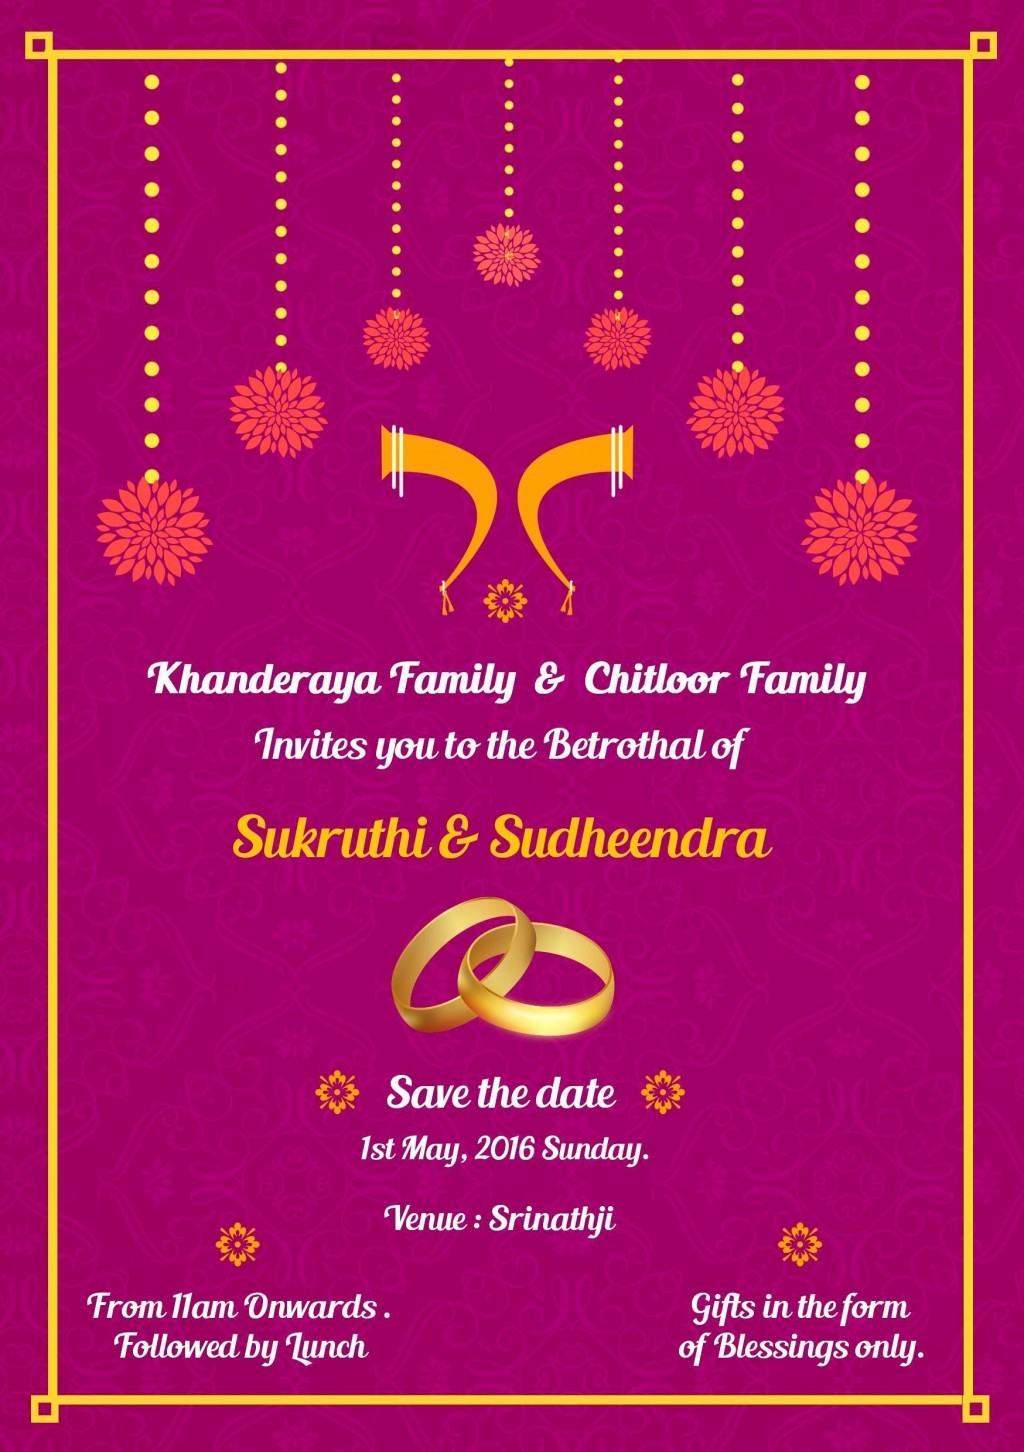 001 Staggering Indian Wedding Invitation Template Photo  Psd Free Download Marriage Online For FriendLarge